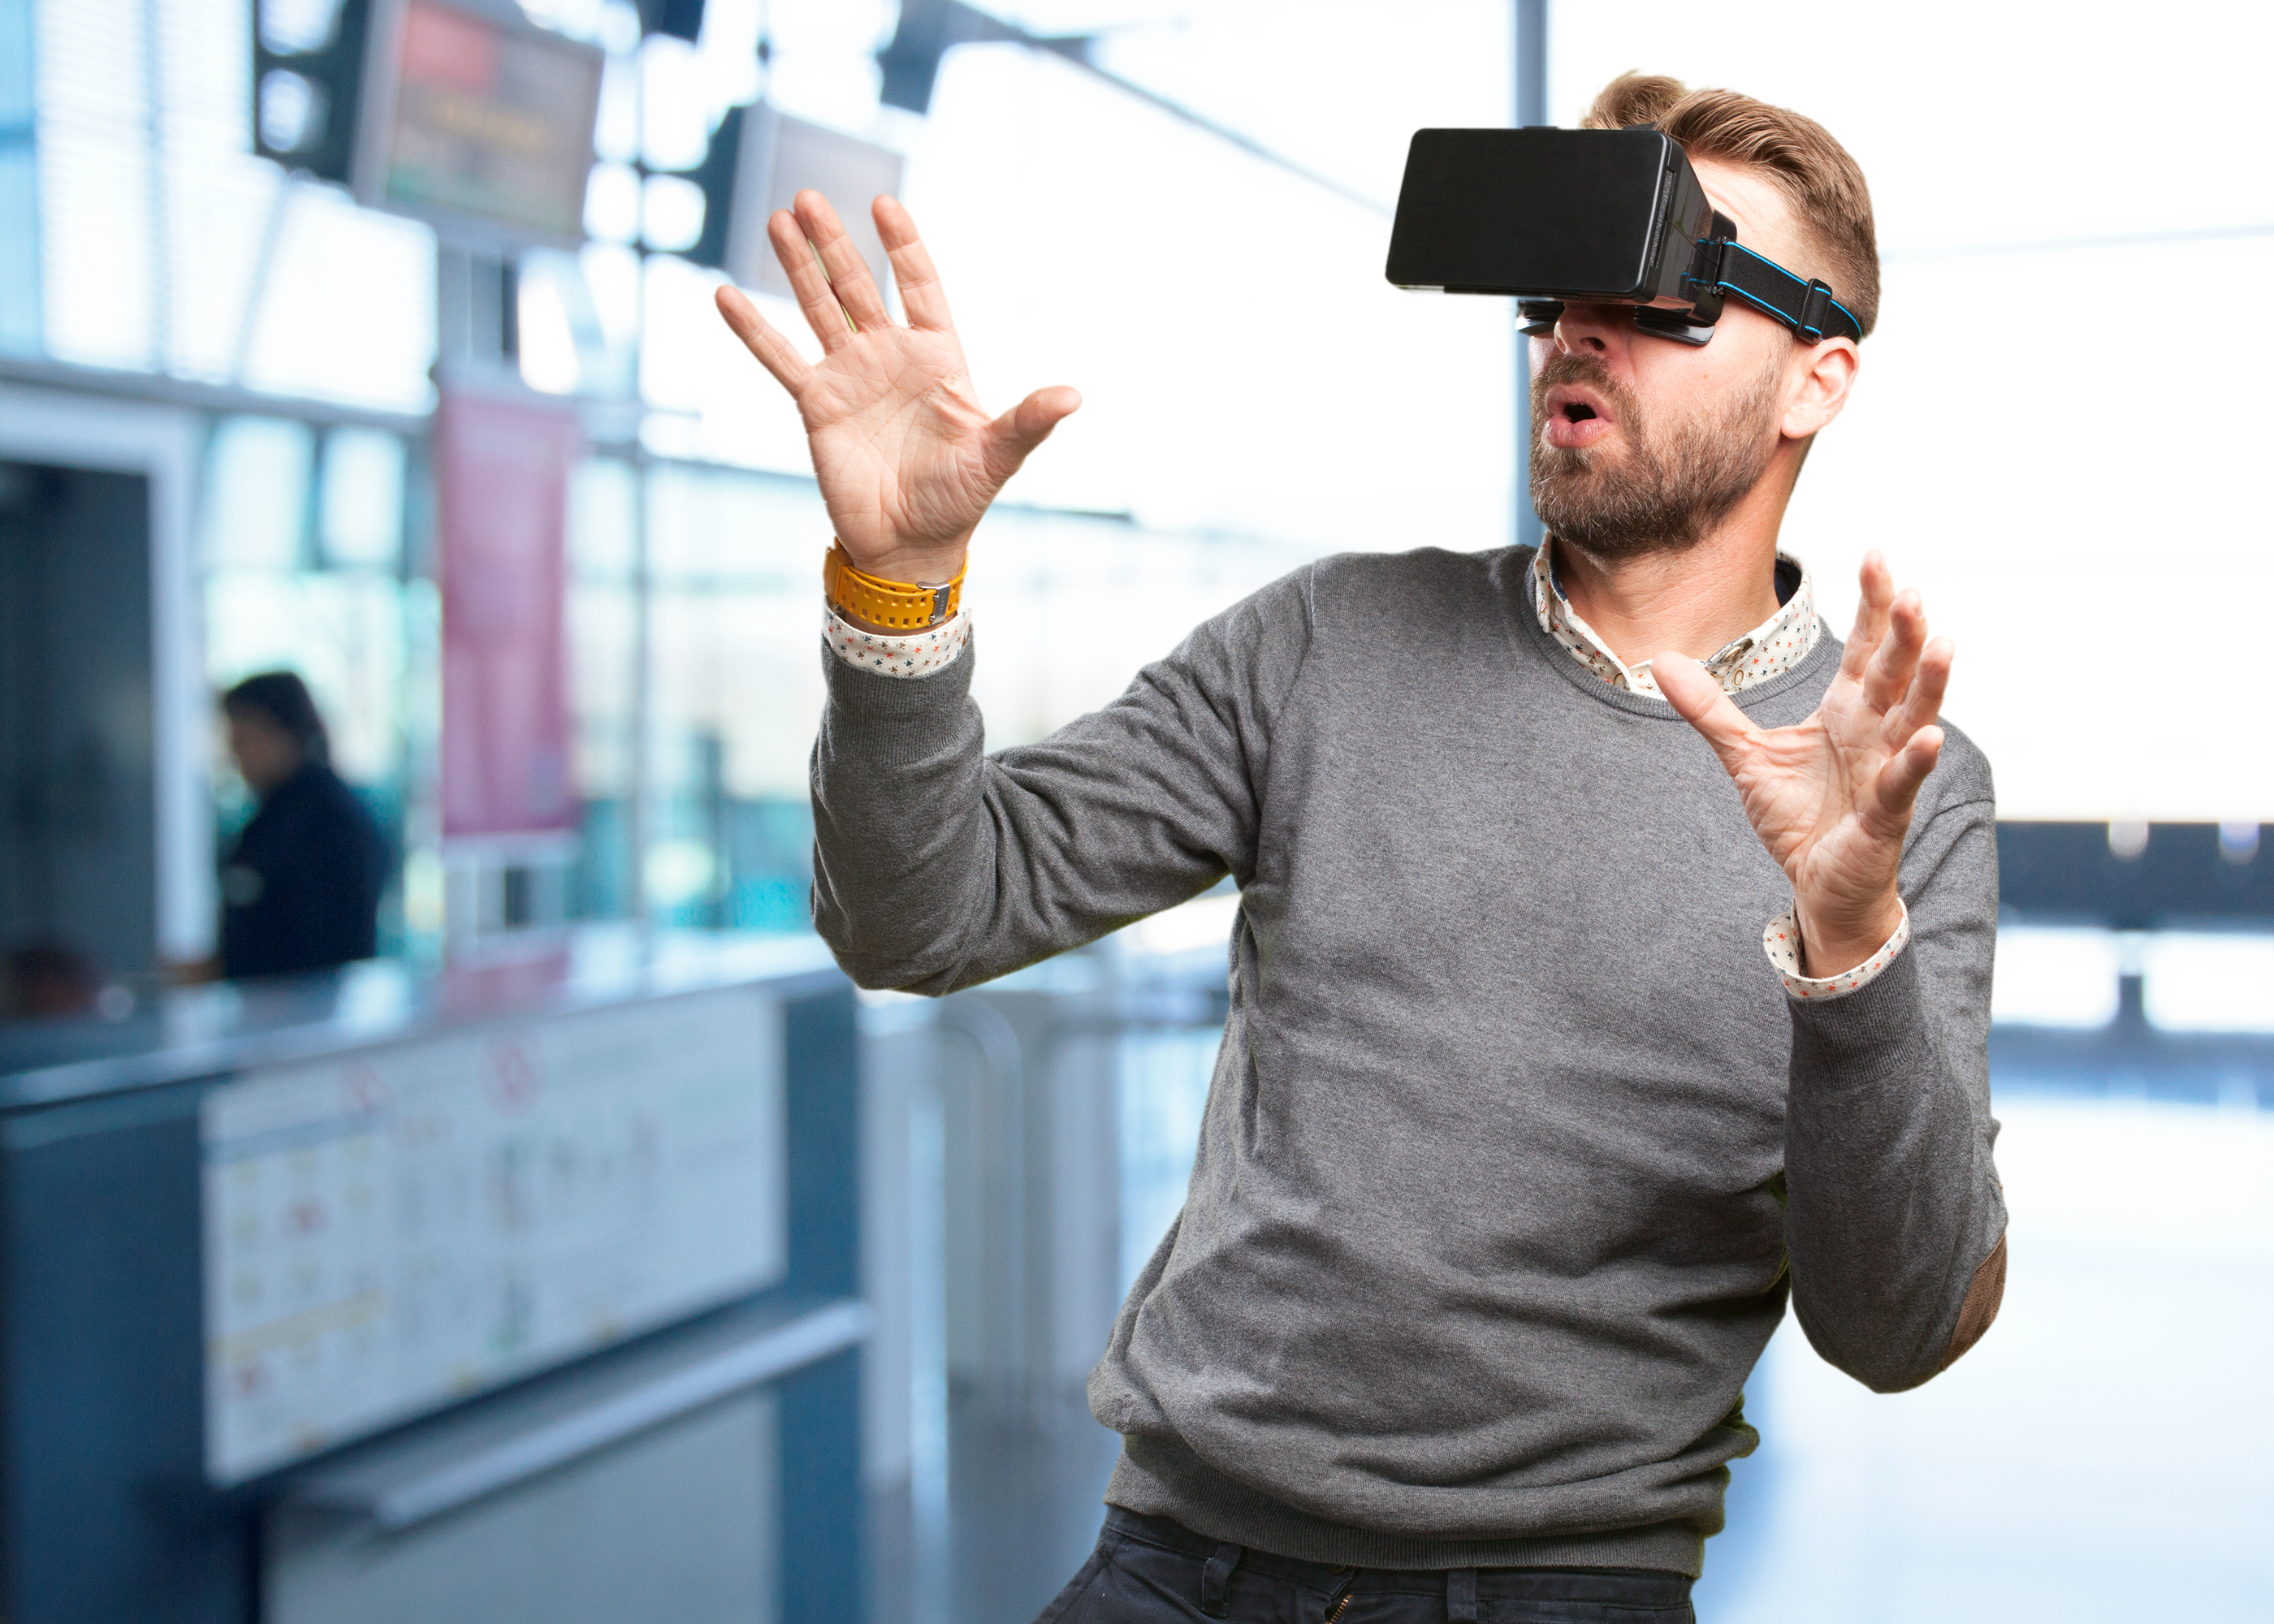 Now that it's becoming more mainstream how are businesses taking advantage of virtual reality?